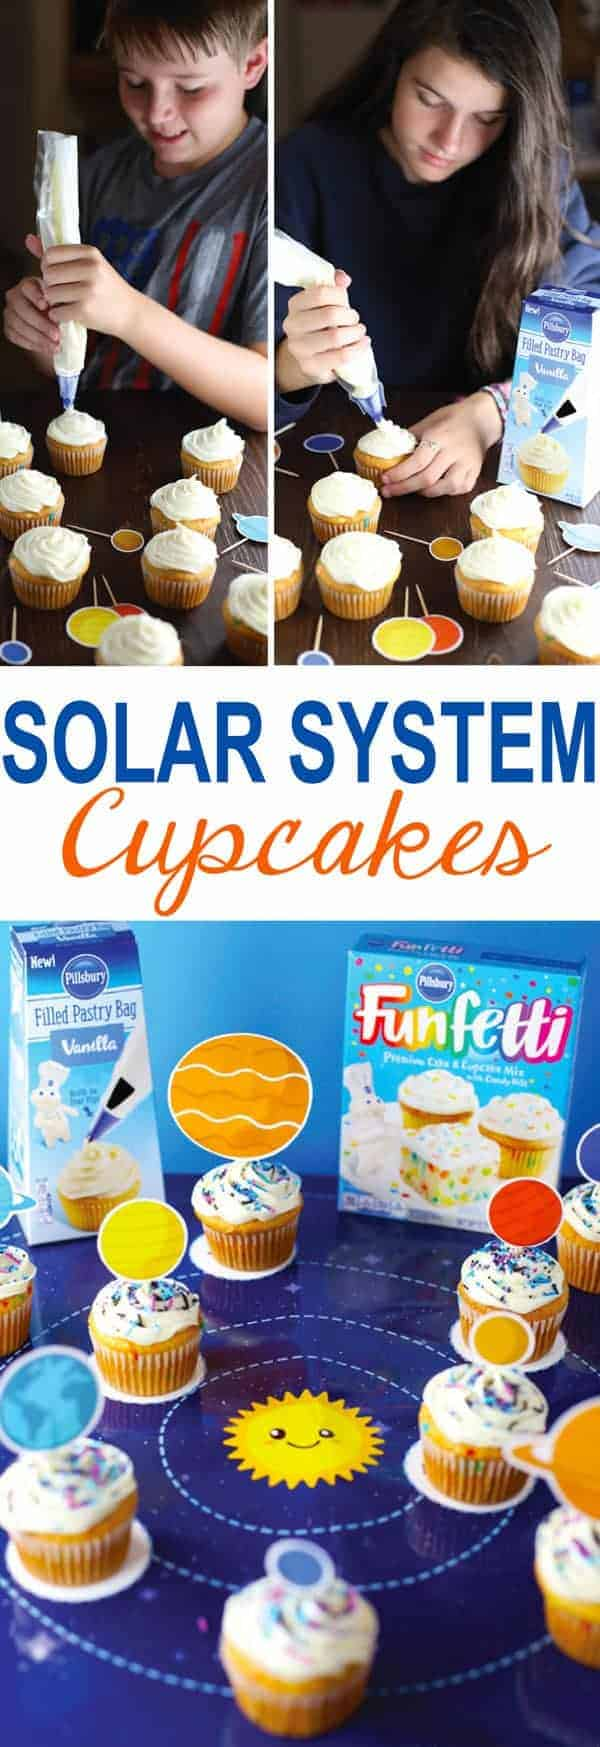 Solar System Cupcakes and kids frosting cupcakes